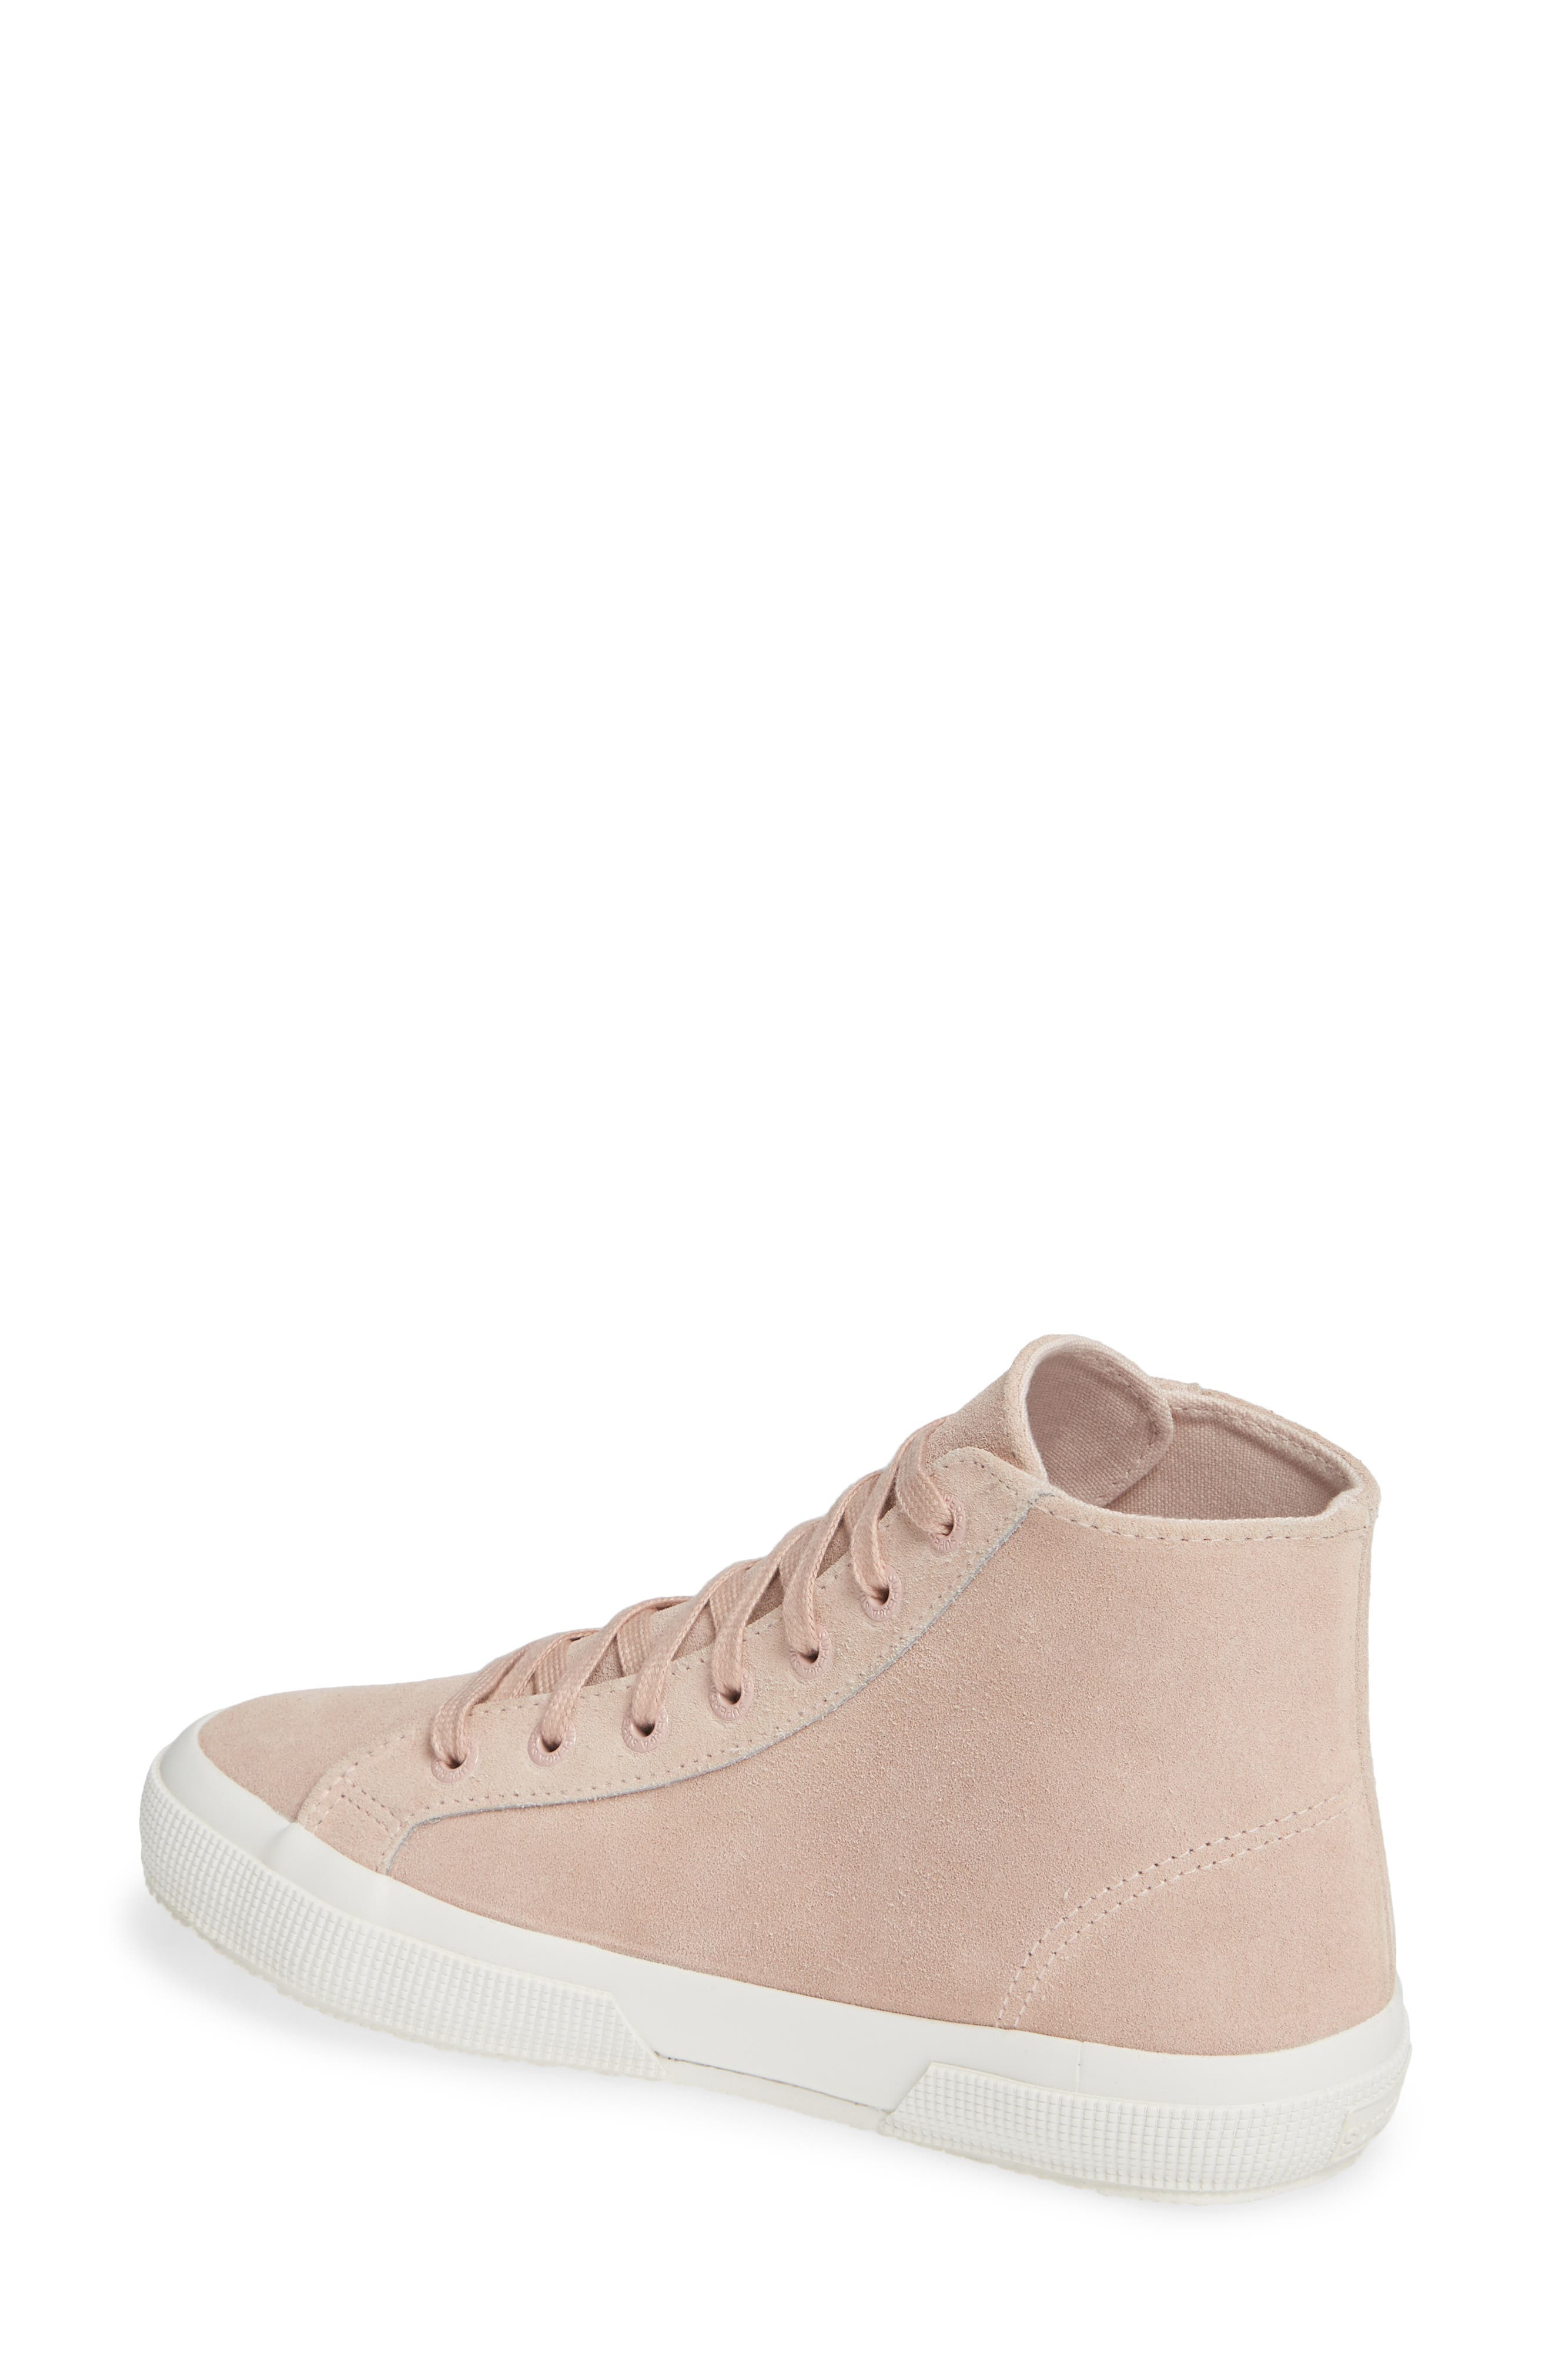 2795 High Top Sneaker,                             Alternate thumbnail 2, color,                             ROSE SUEDE